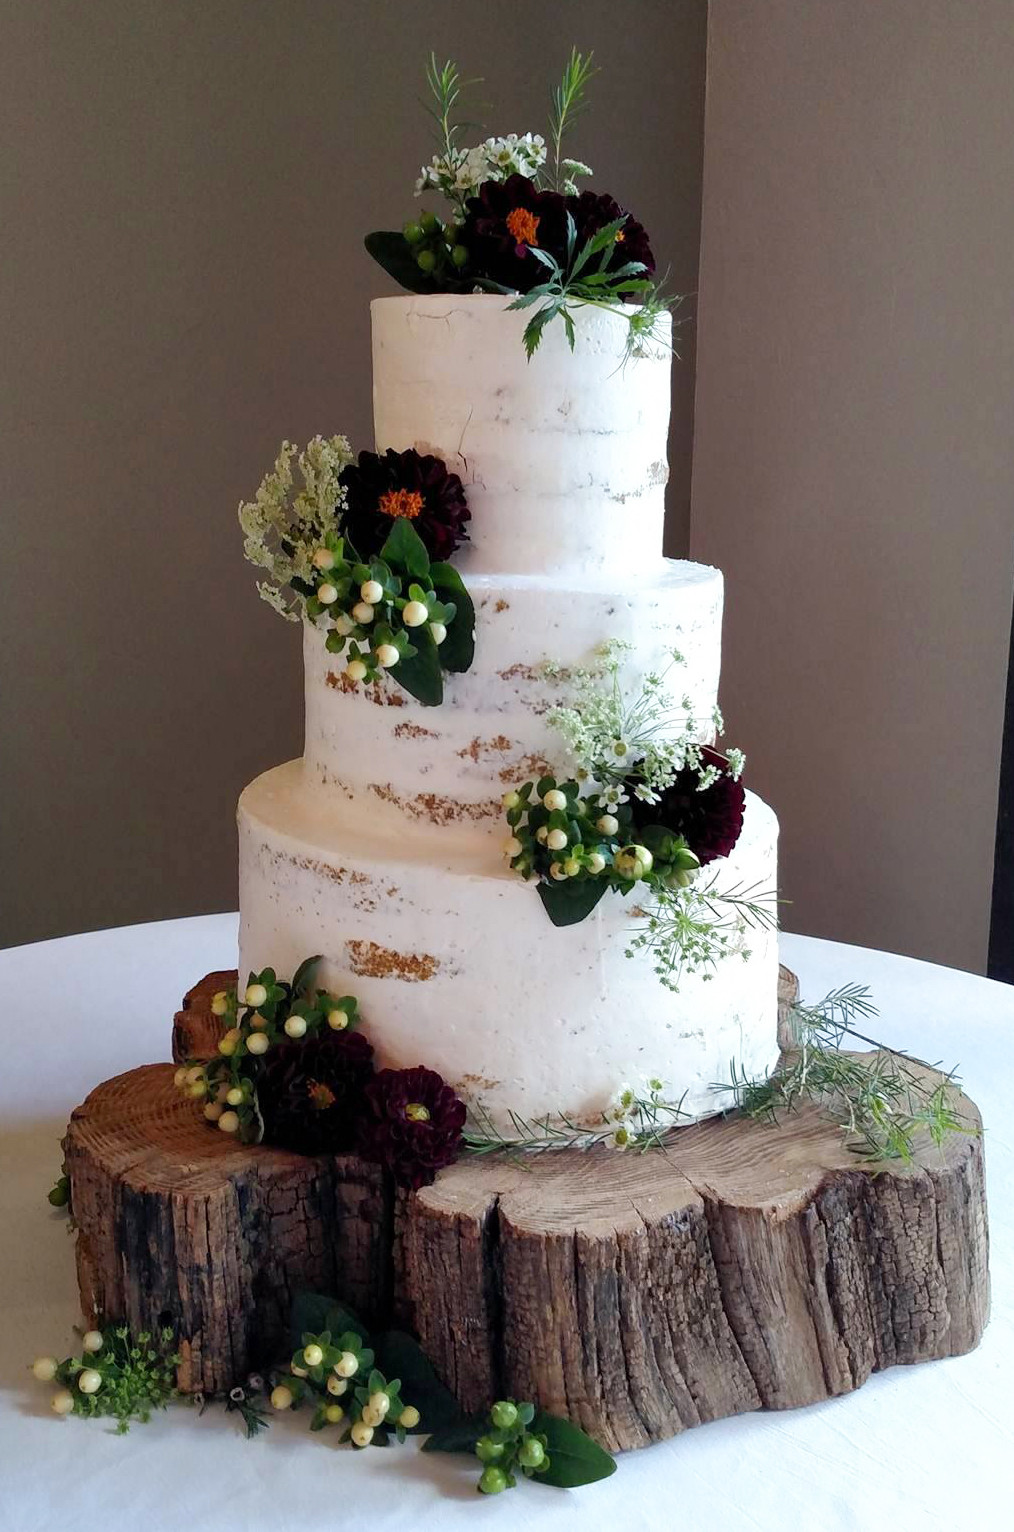 Iced Wedding Cakes  Barely iced cake with fresh flowers • Just Simply